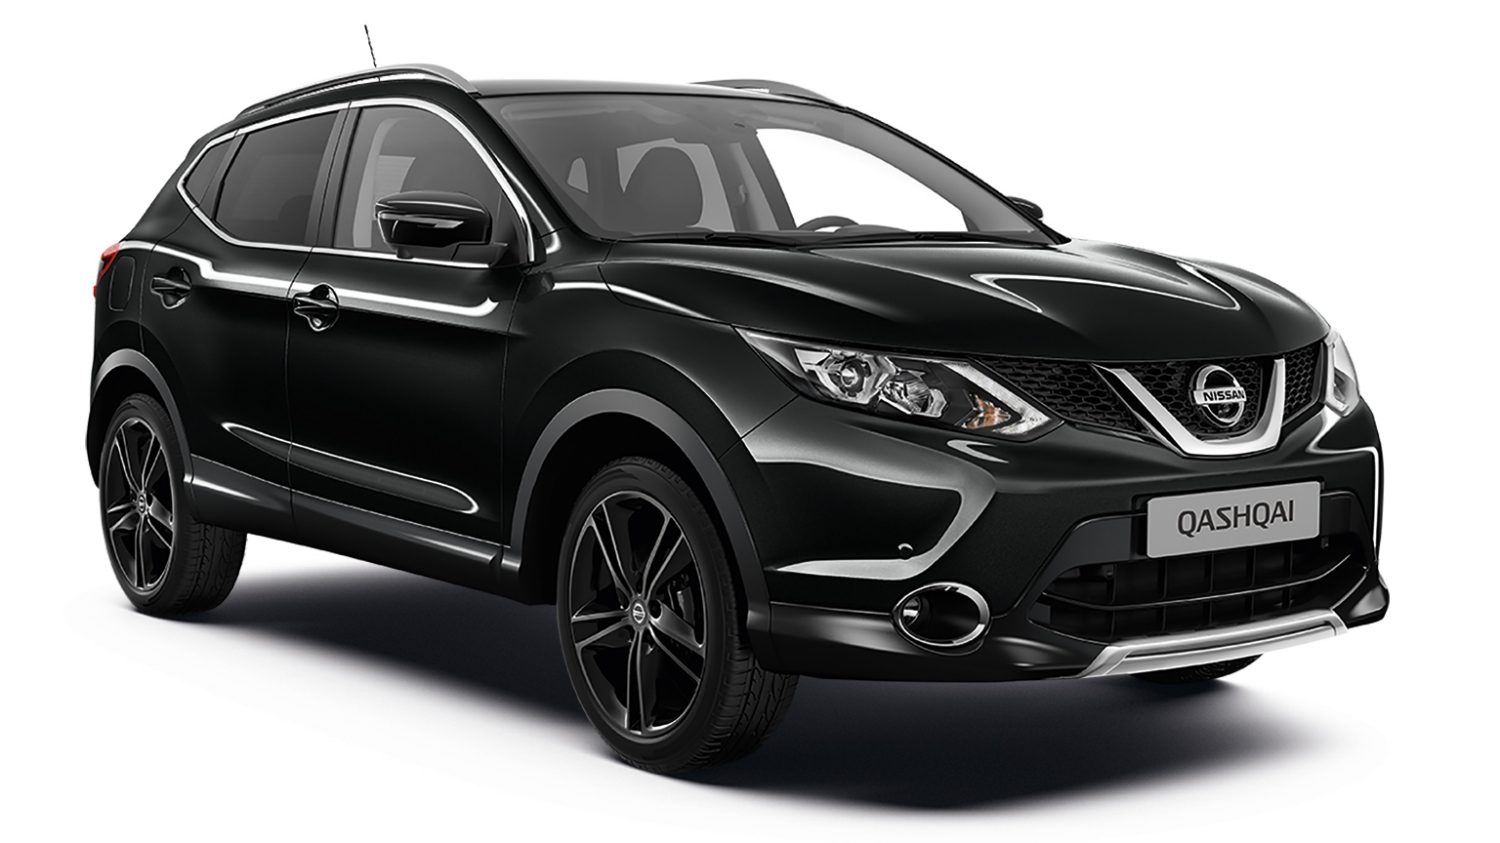 accessoires nissan qashqai crossover nissan. Black Bedroom Furniture Sets. Home Design Ideas